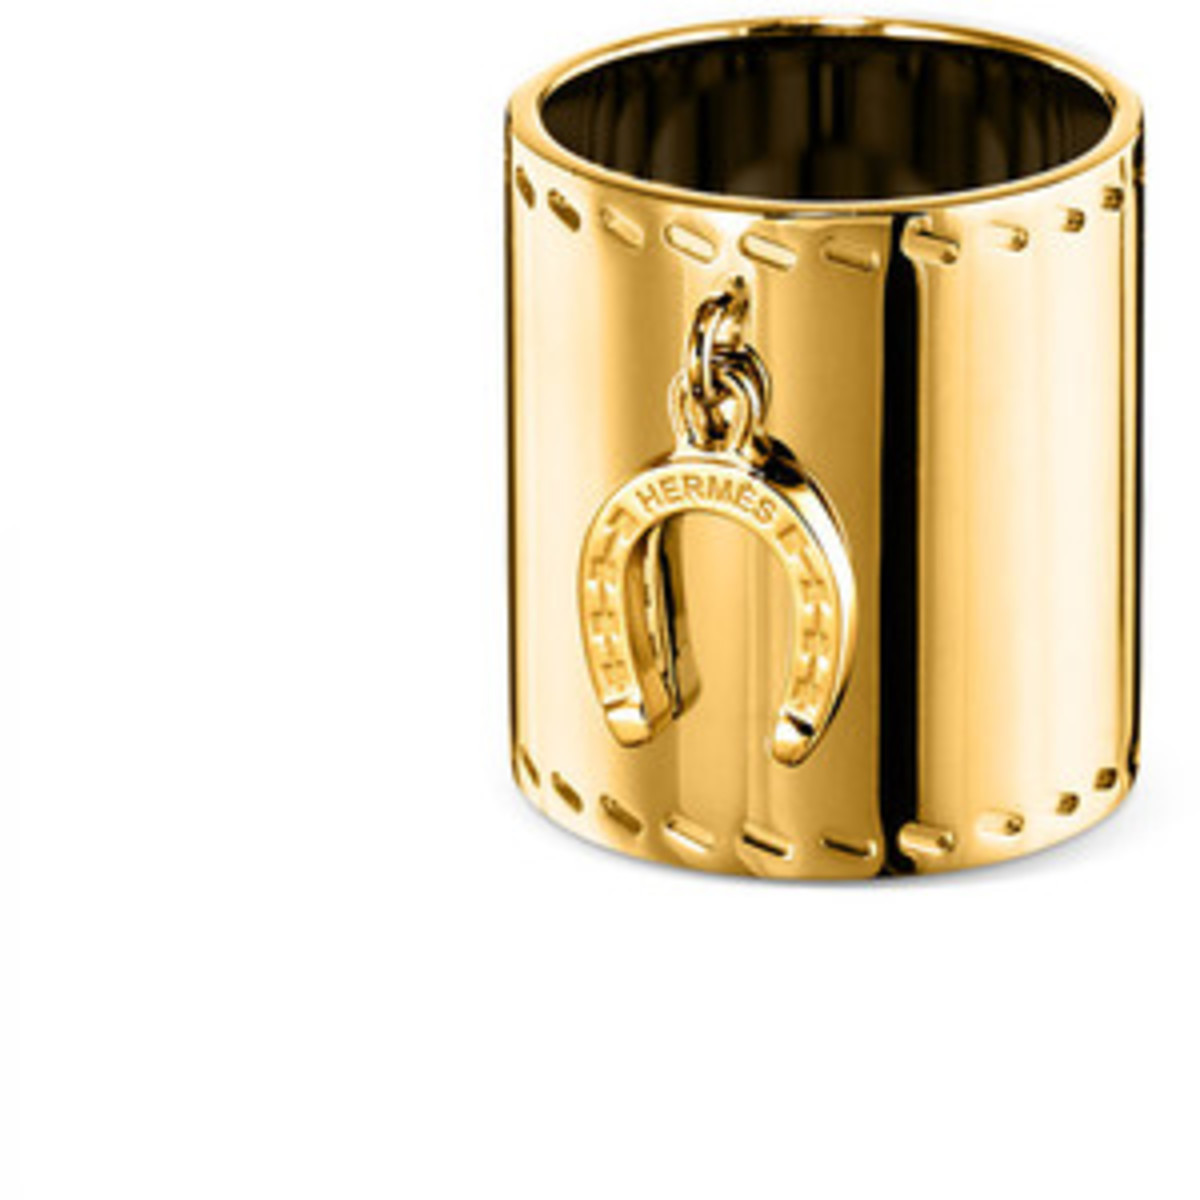 gold Hermes scarf ring